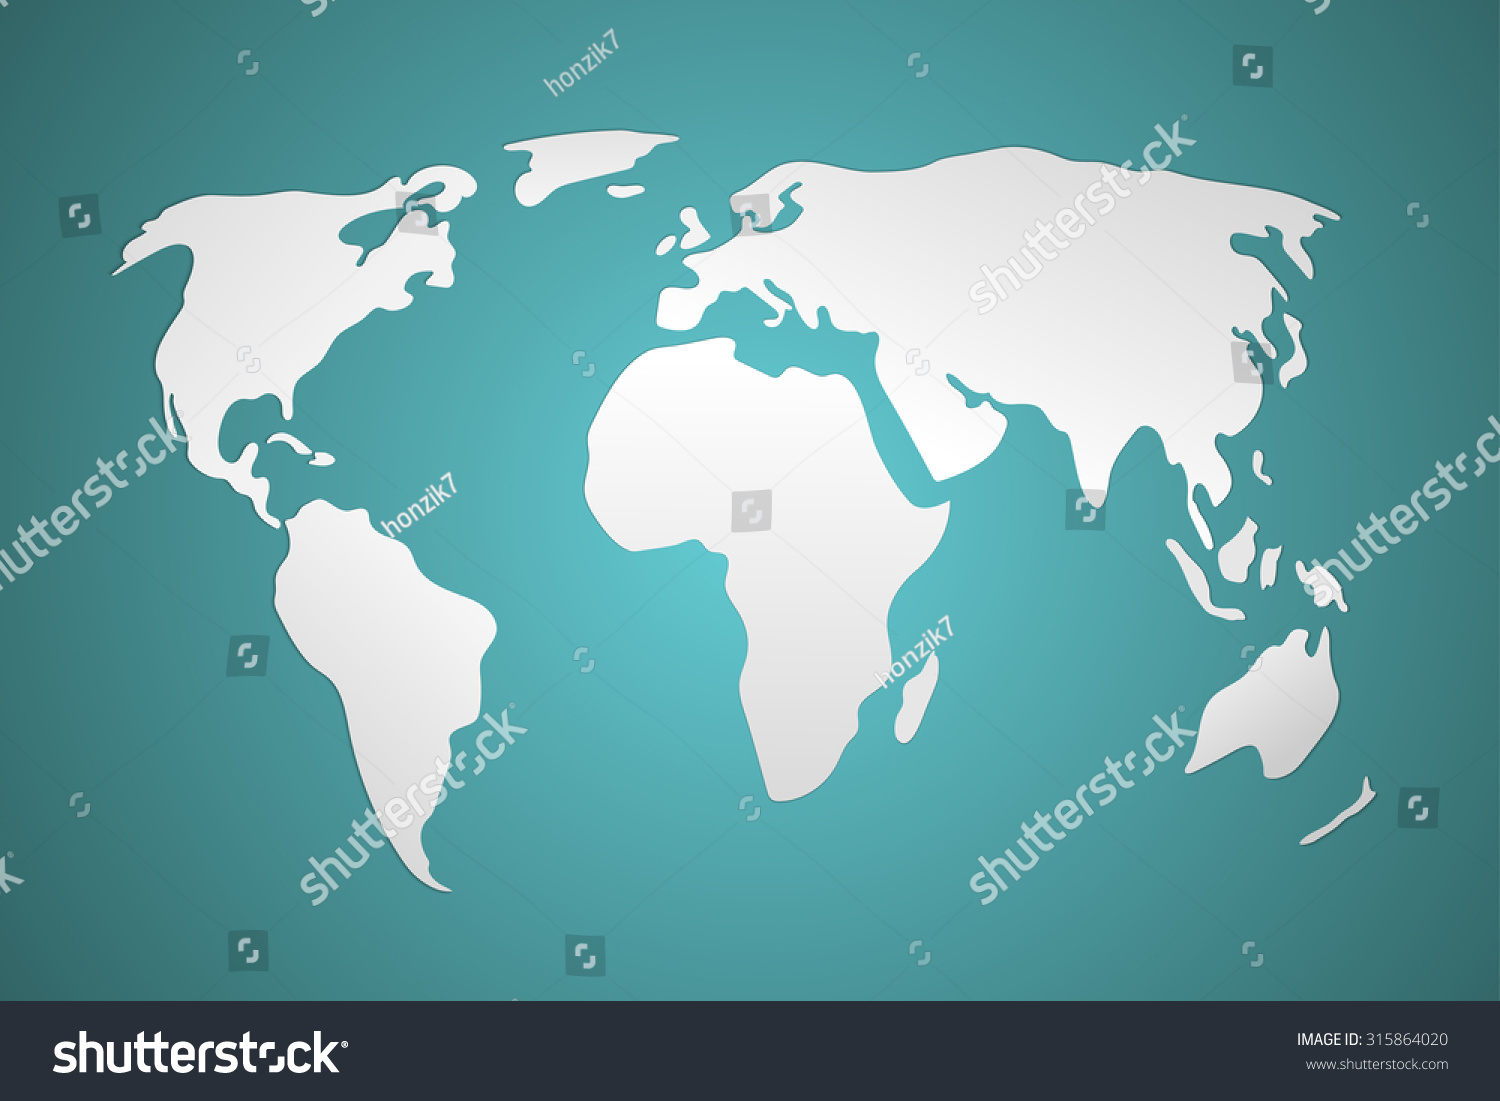 3d world map vector illustration simplistic vectores en stock 3d world map vector illustration simplistic vectores en stock 315864020 shutterstock gumiabroncs Images